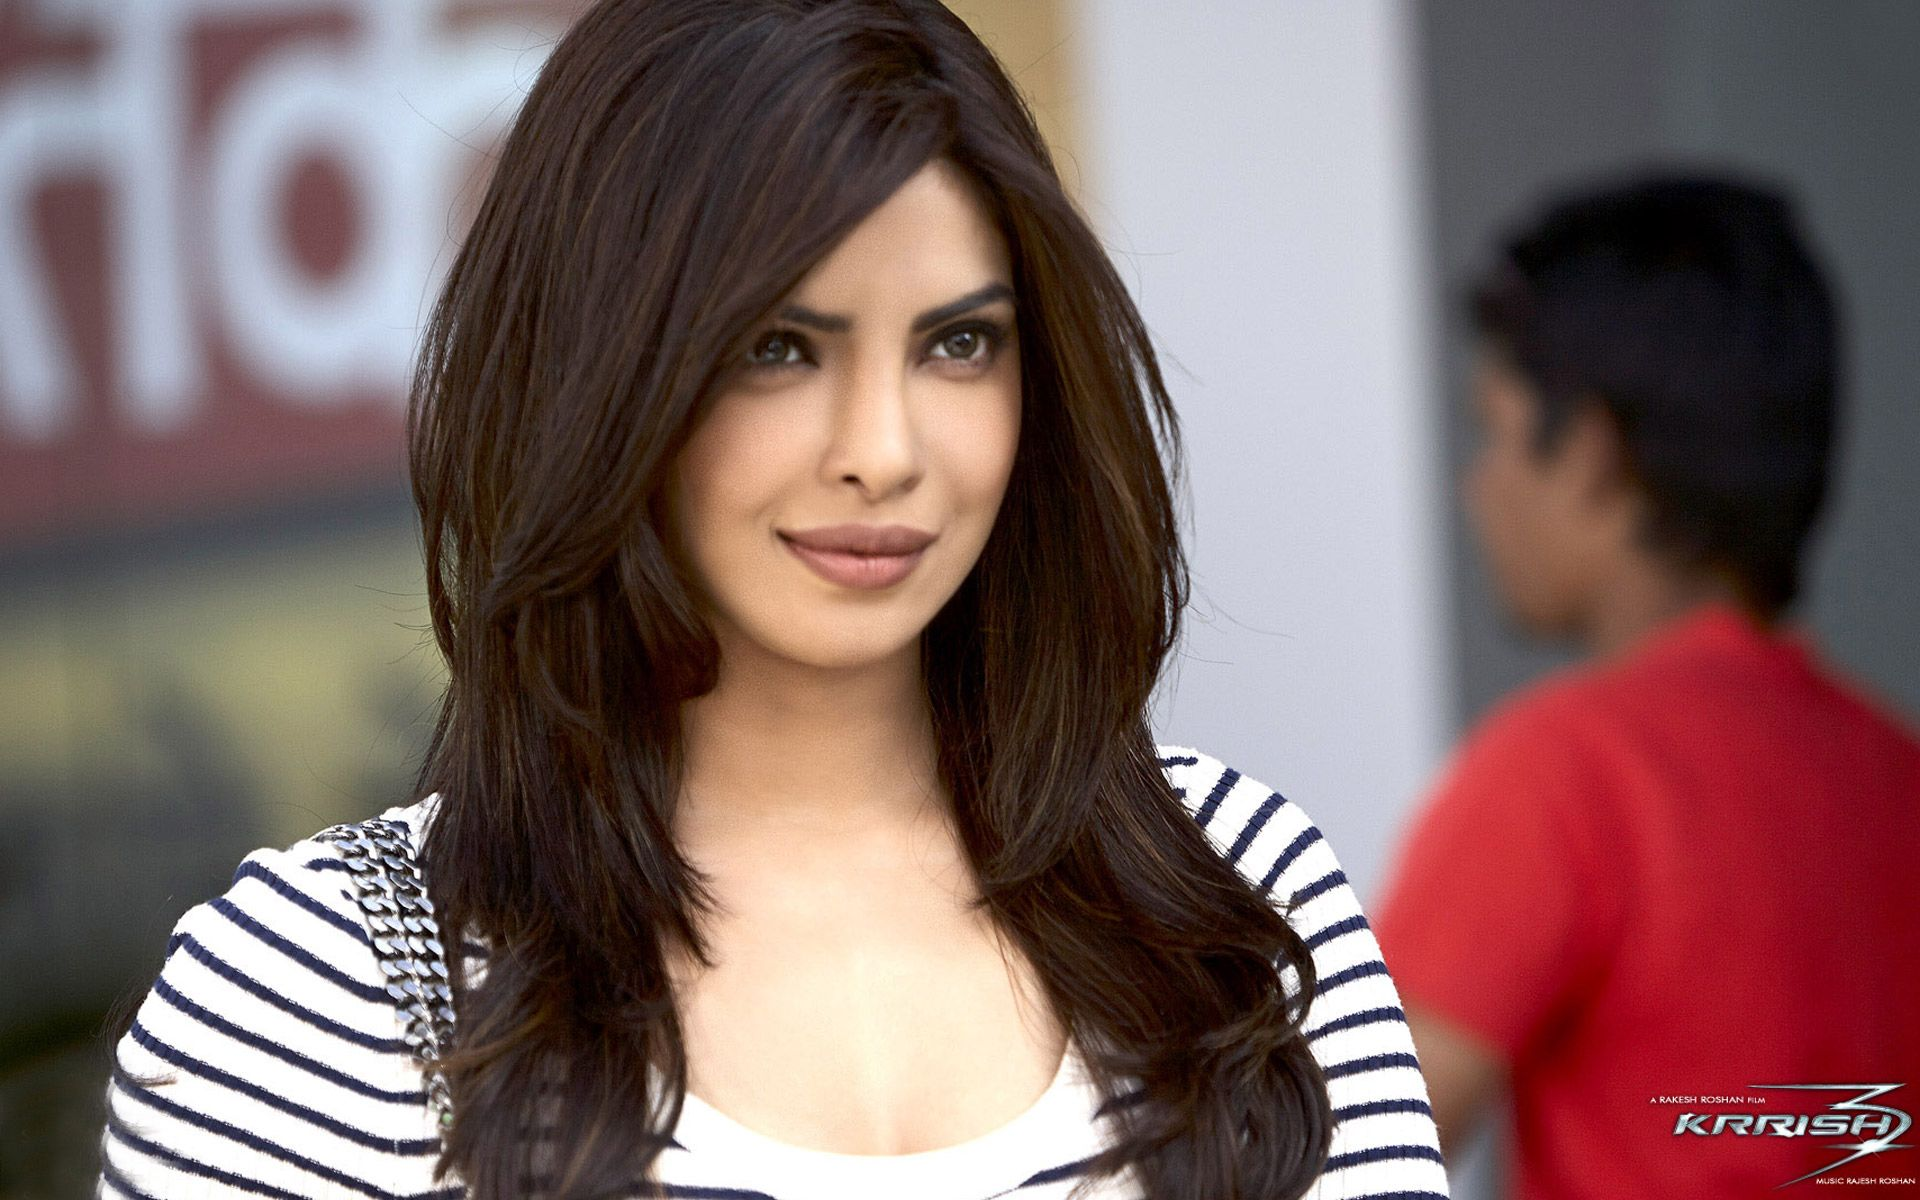 priyanka in krrish 3 | bollywood | pinterest | bollywood and movie